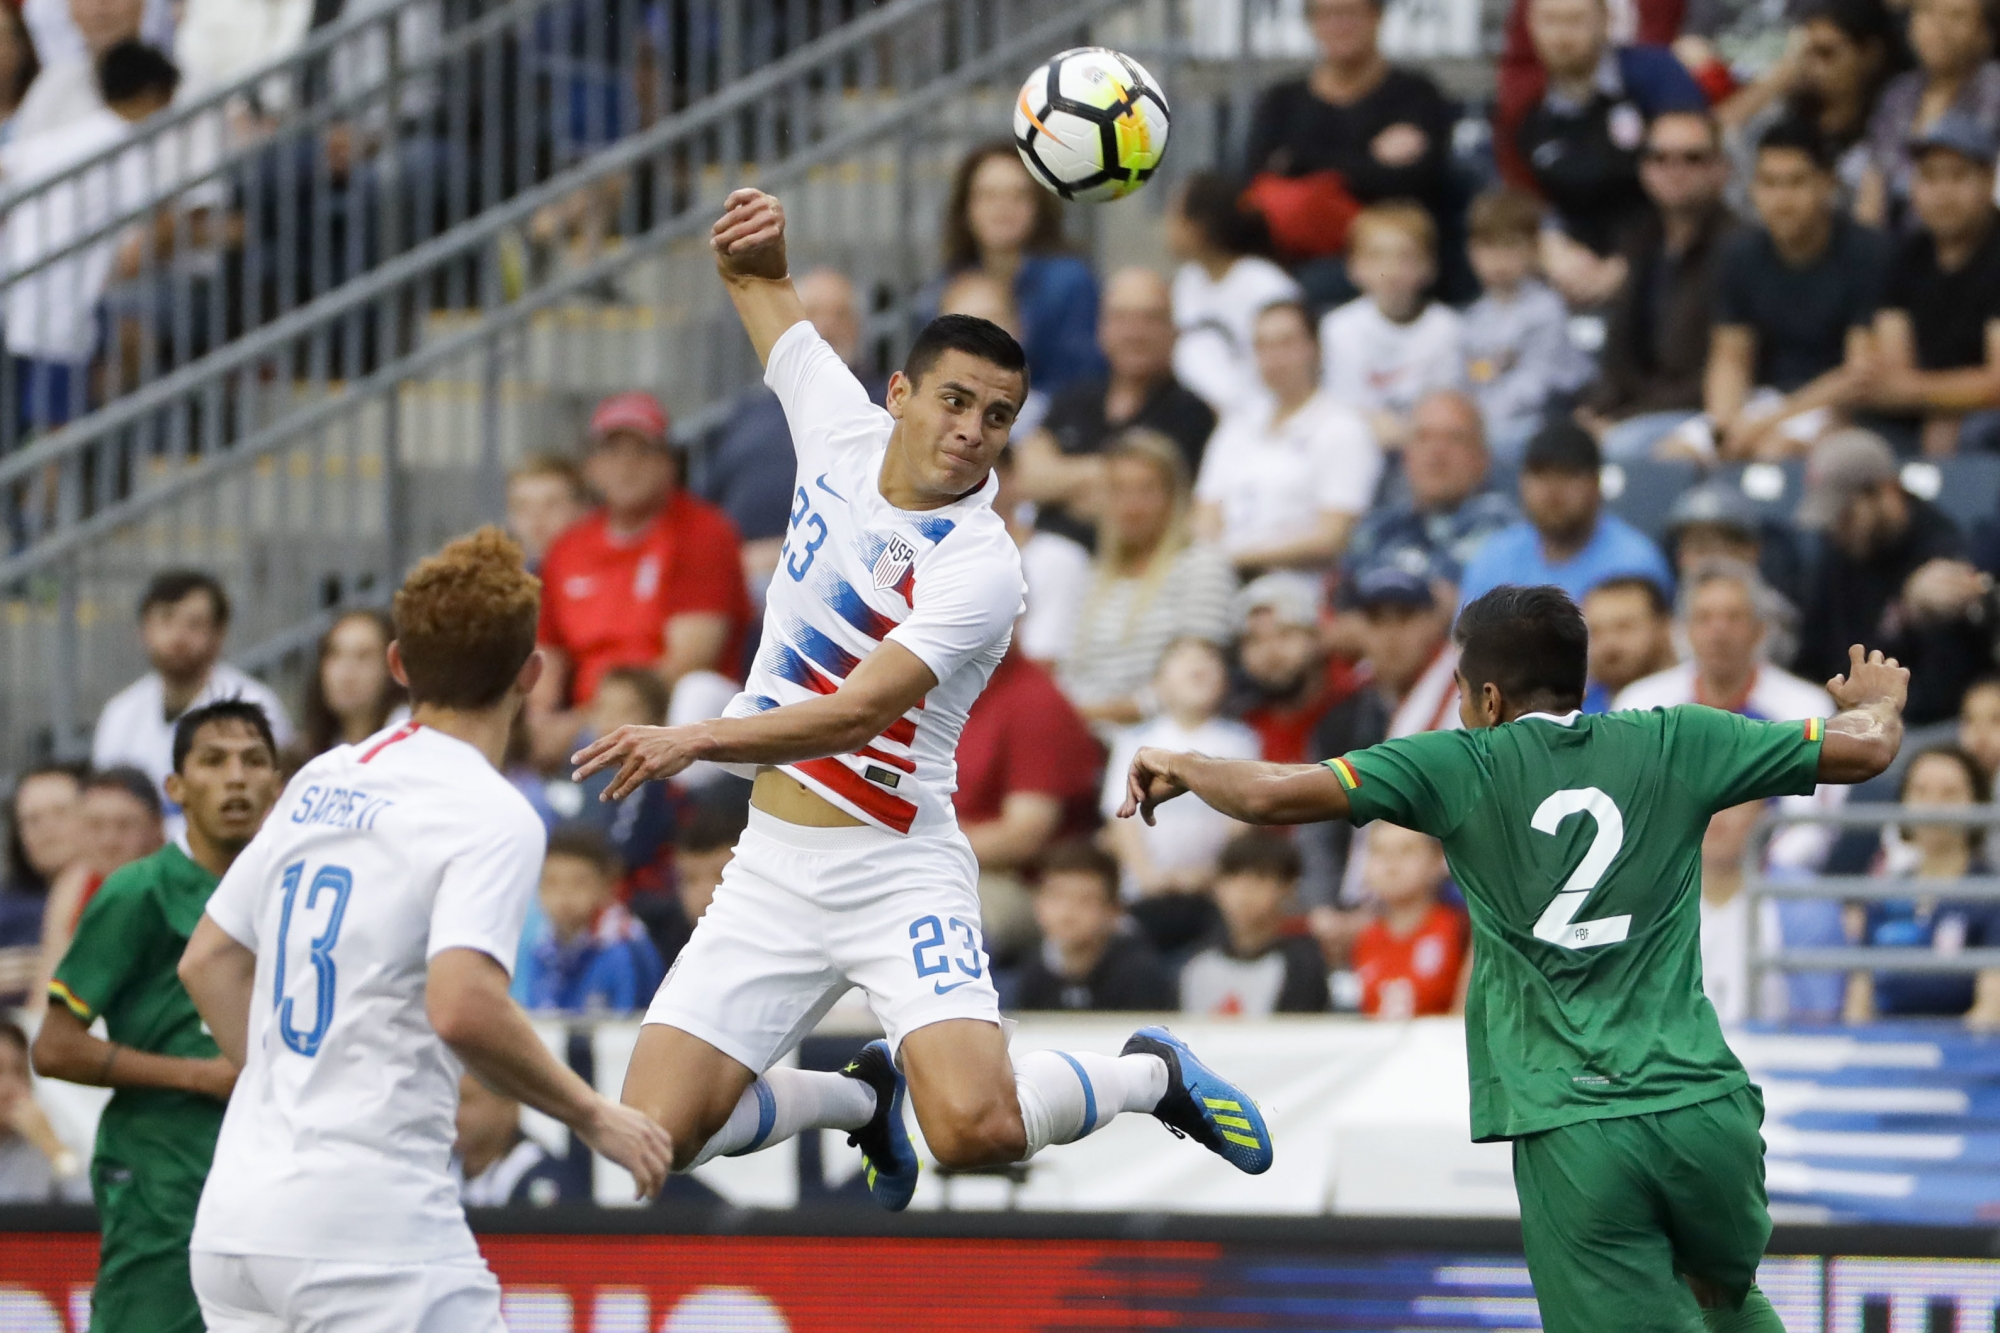 460732c3359 (AP) — Josh Sargent scored in his American debut, fellow 18-year-old Tim  Weah added a goal in his second international match and a young United  States team ...